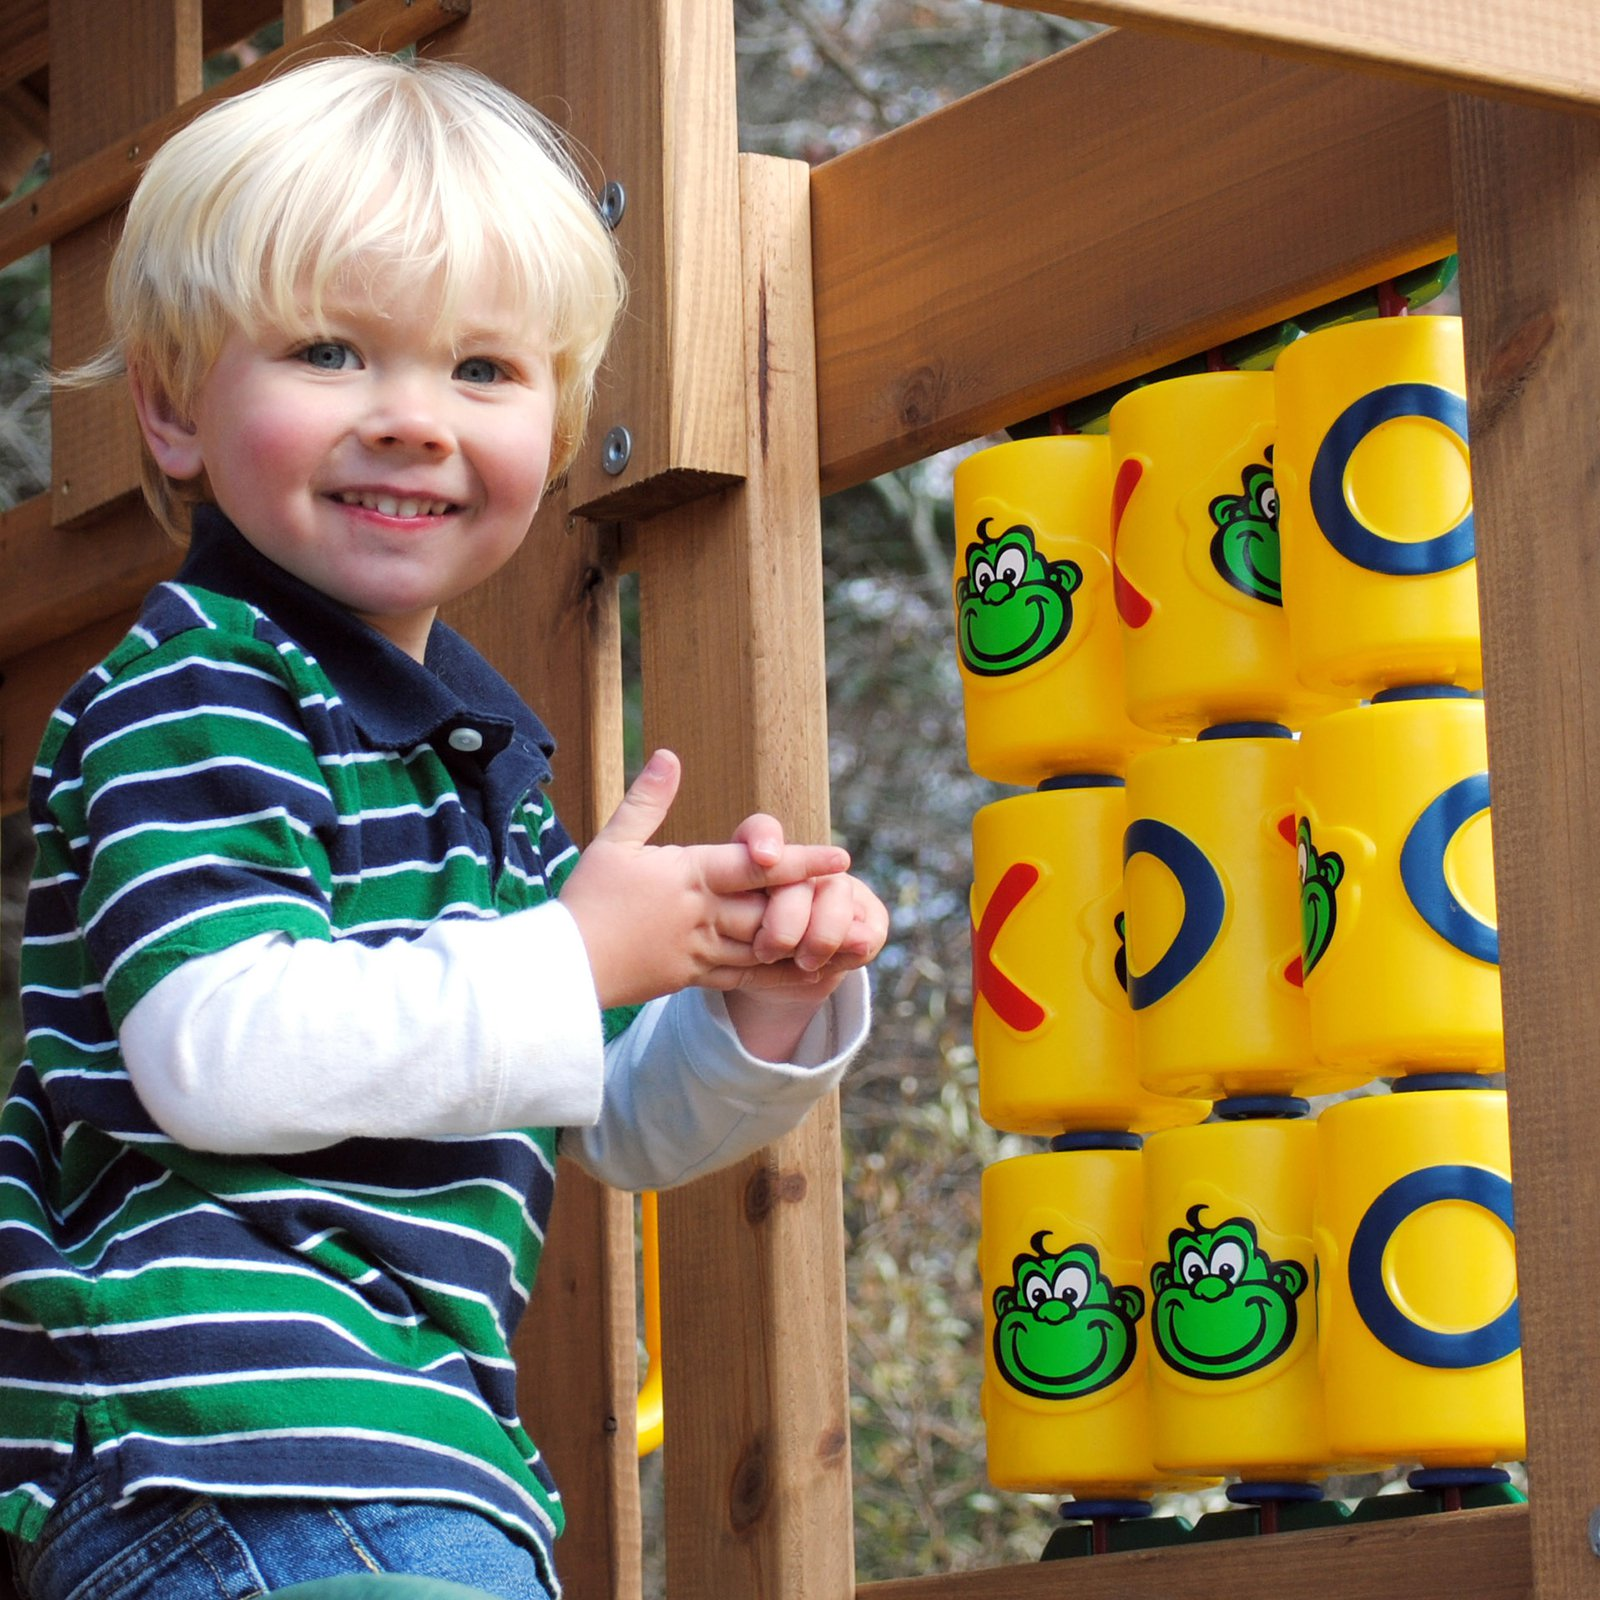 Playtime Swing Sets Tic-Tac Toe Panel - Yellow